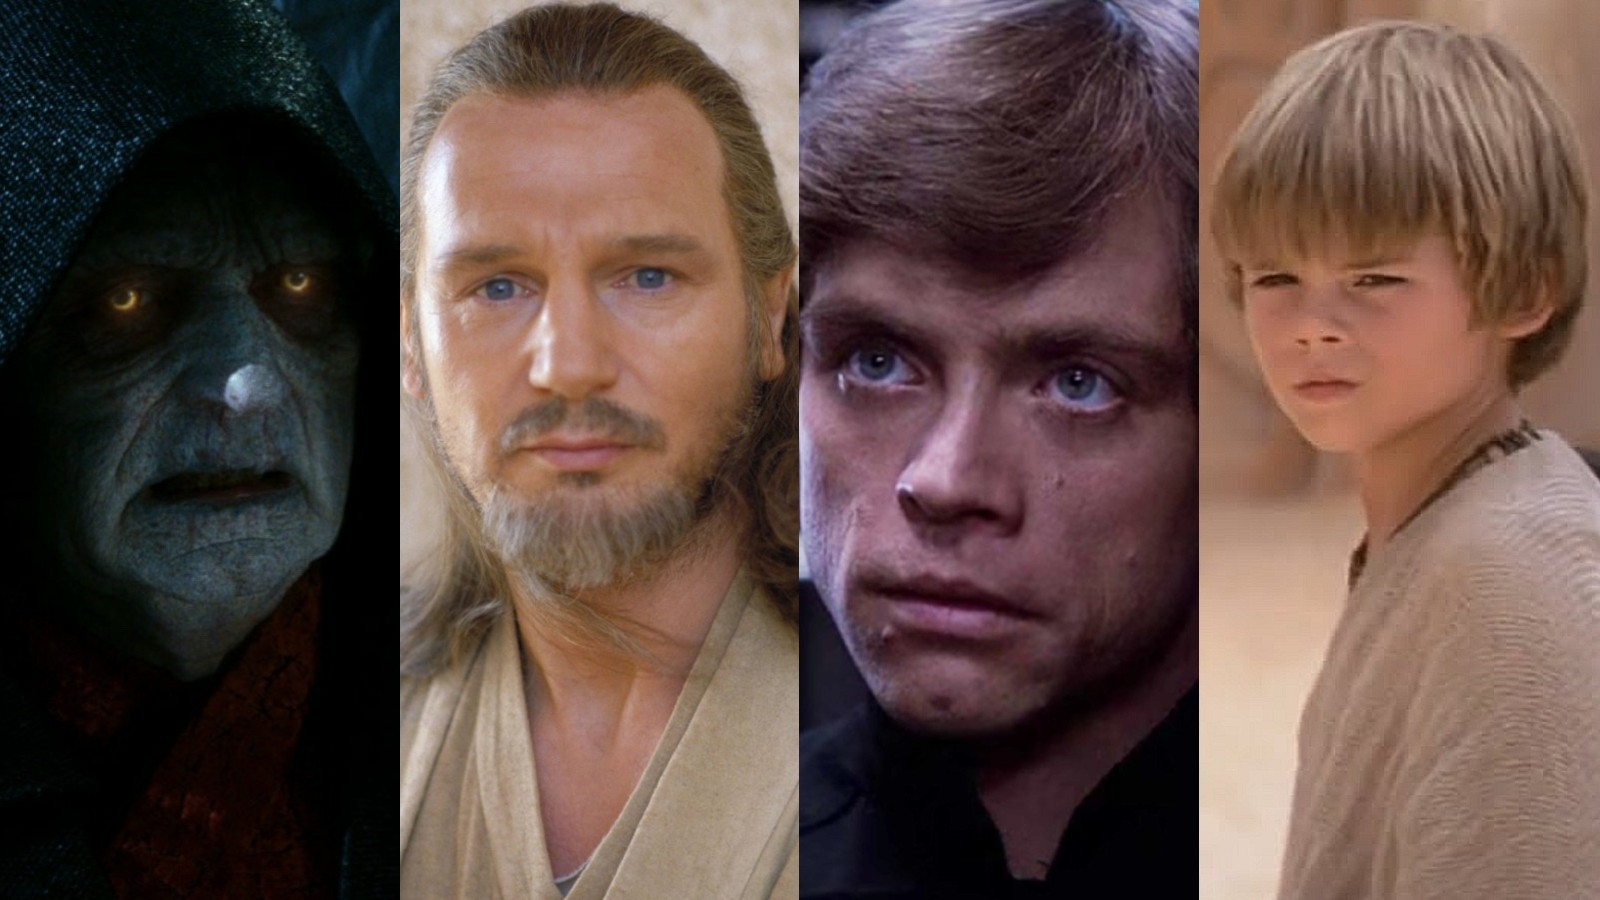 Palpatine, Qui-Gon Jinn, Luke Skywalker and Anakin Skywalker in Star Wars